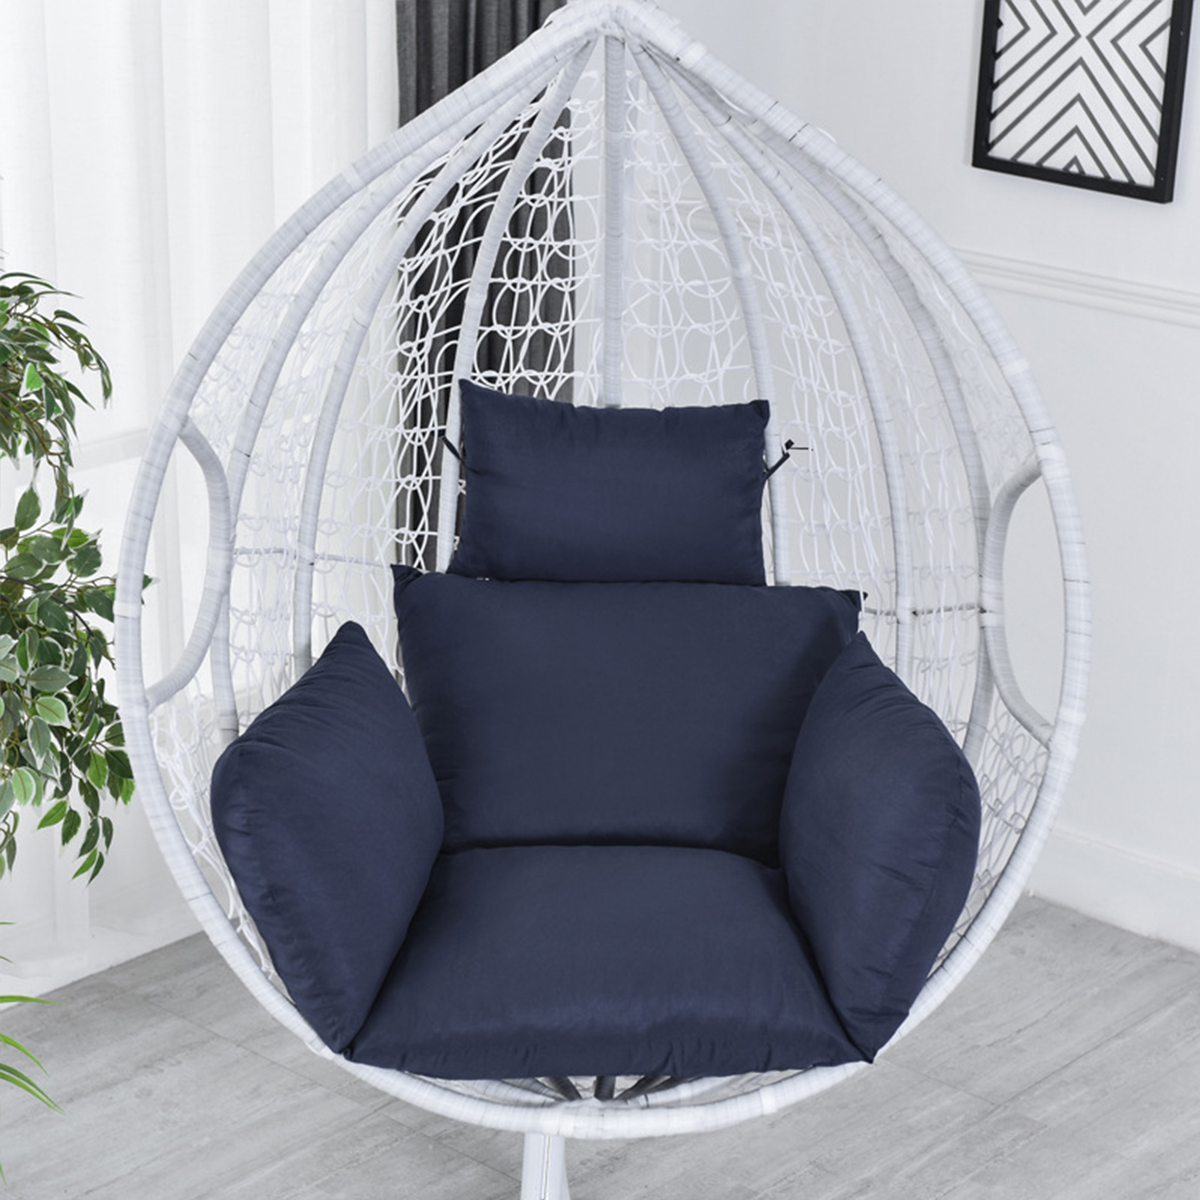 hammock chair cushions egg chair soft pad cushion with headrest for hanging chair swing seat home garden